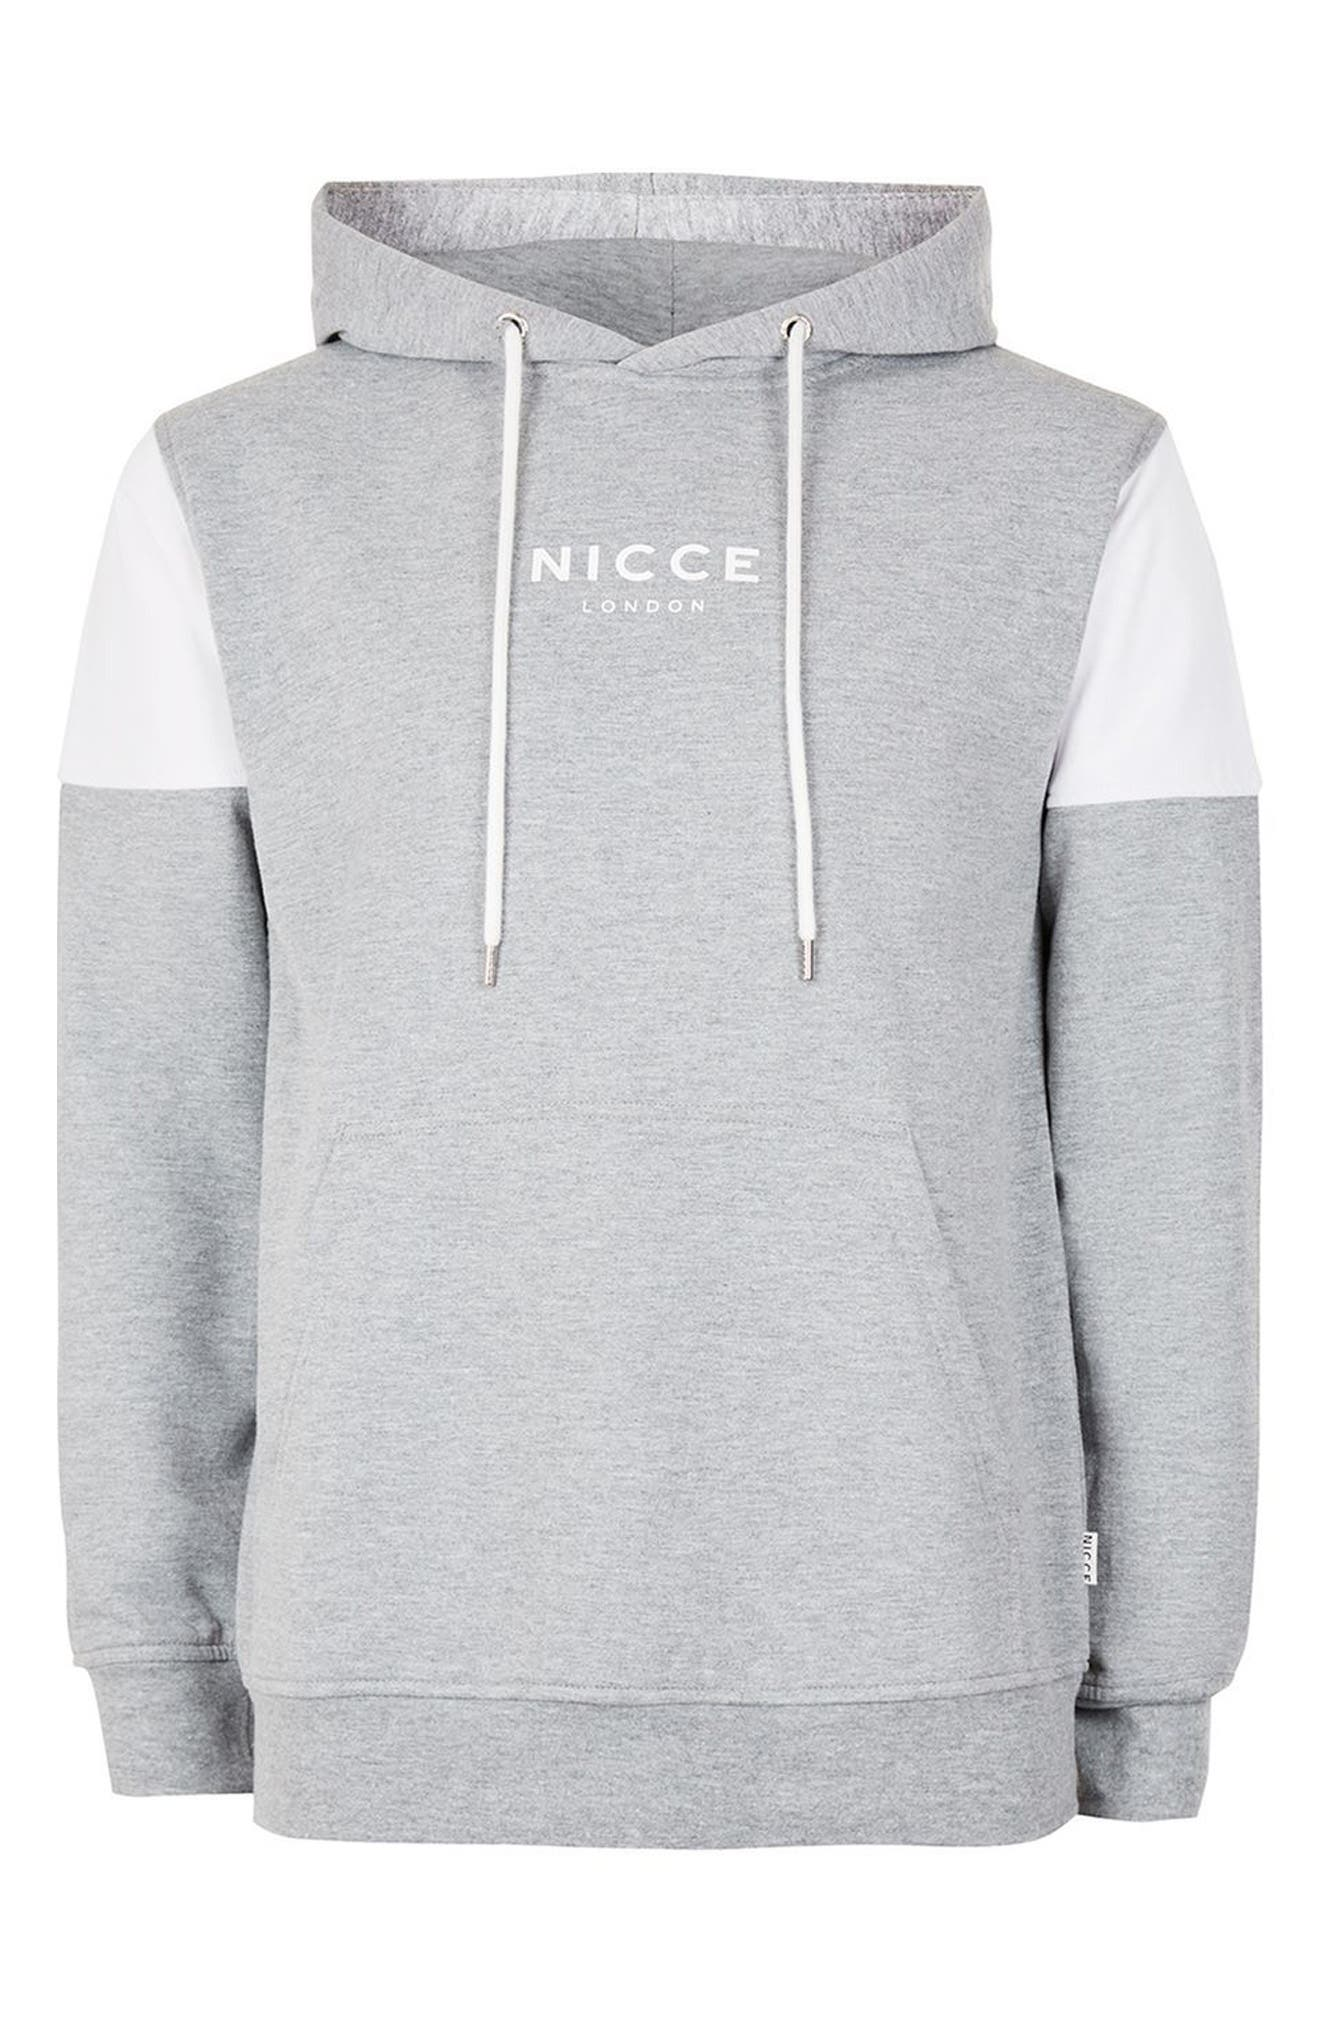 NICCE Slim Fit Colorblock Hoodie,                             Alternate thumbnail 4, color,                             050